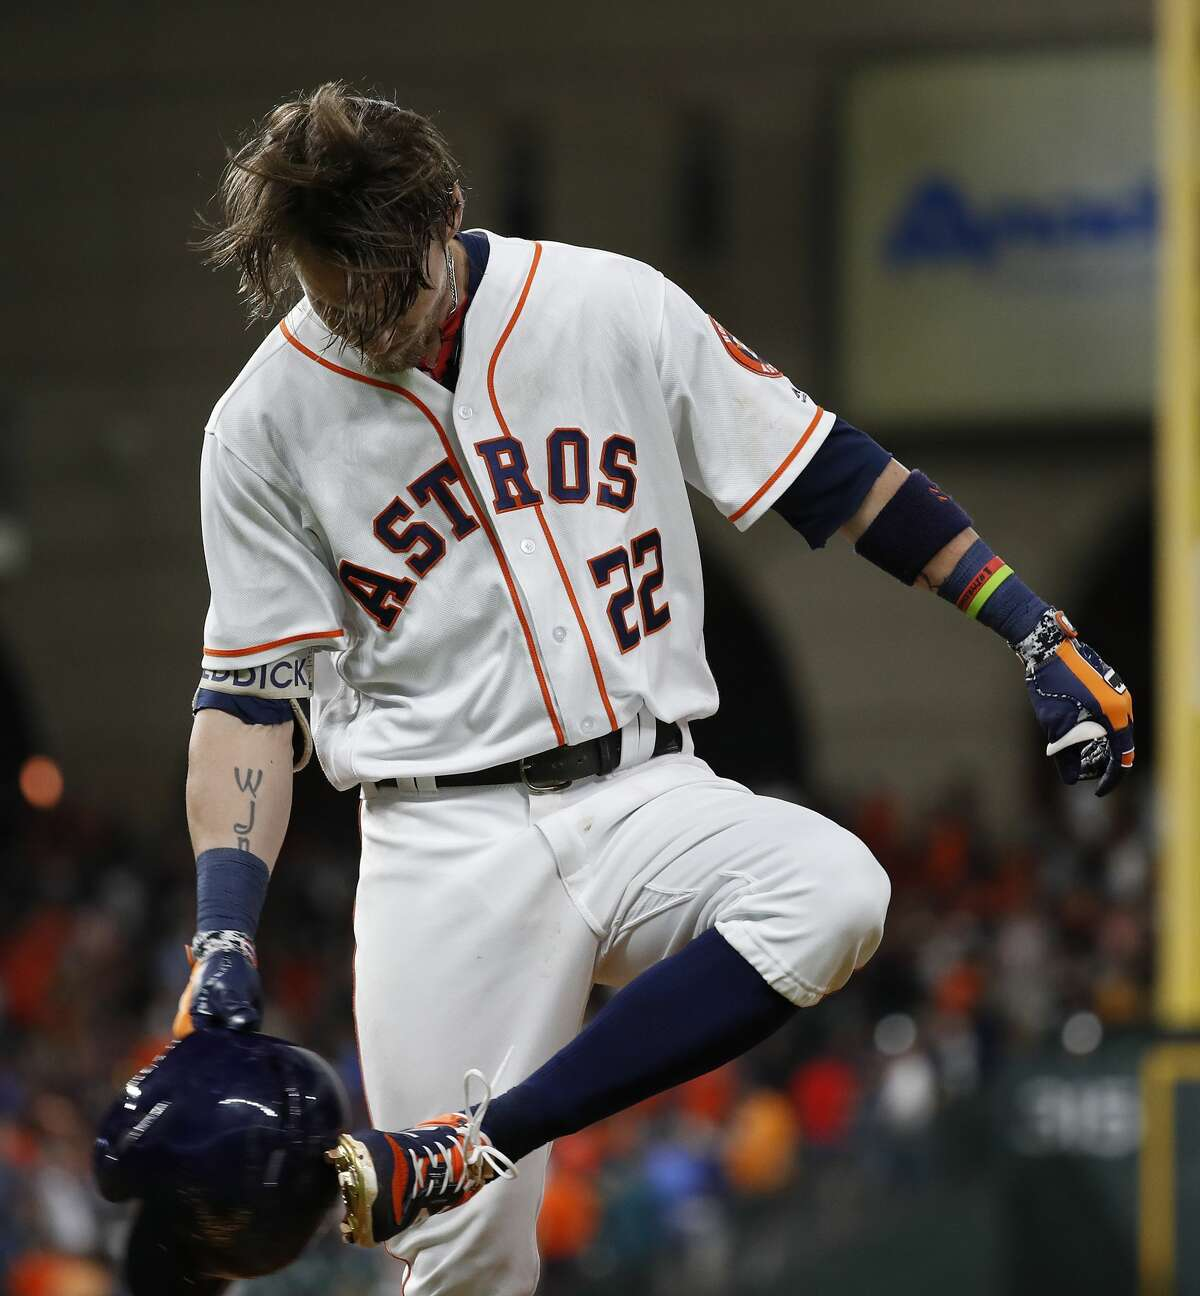 Houston Astros Josh Reddick (22) kicks his batting helmet as he popped out to end the game during an MLB game at Minute Maid Park, Saturday, August 11, 2018, in Houston.